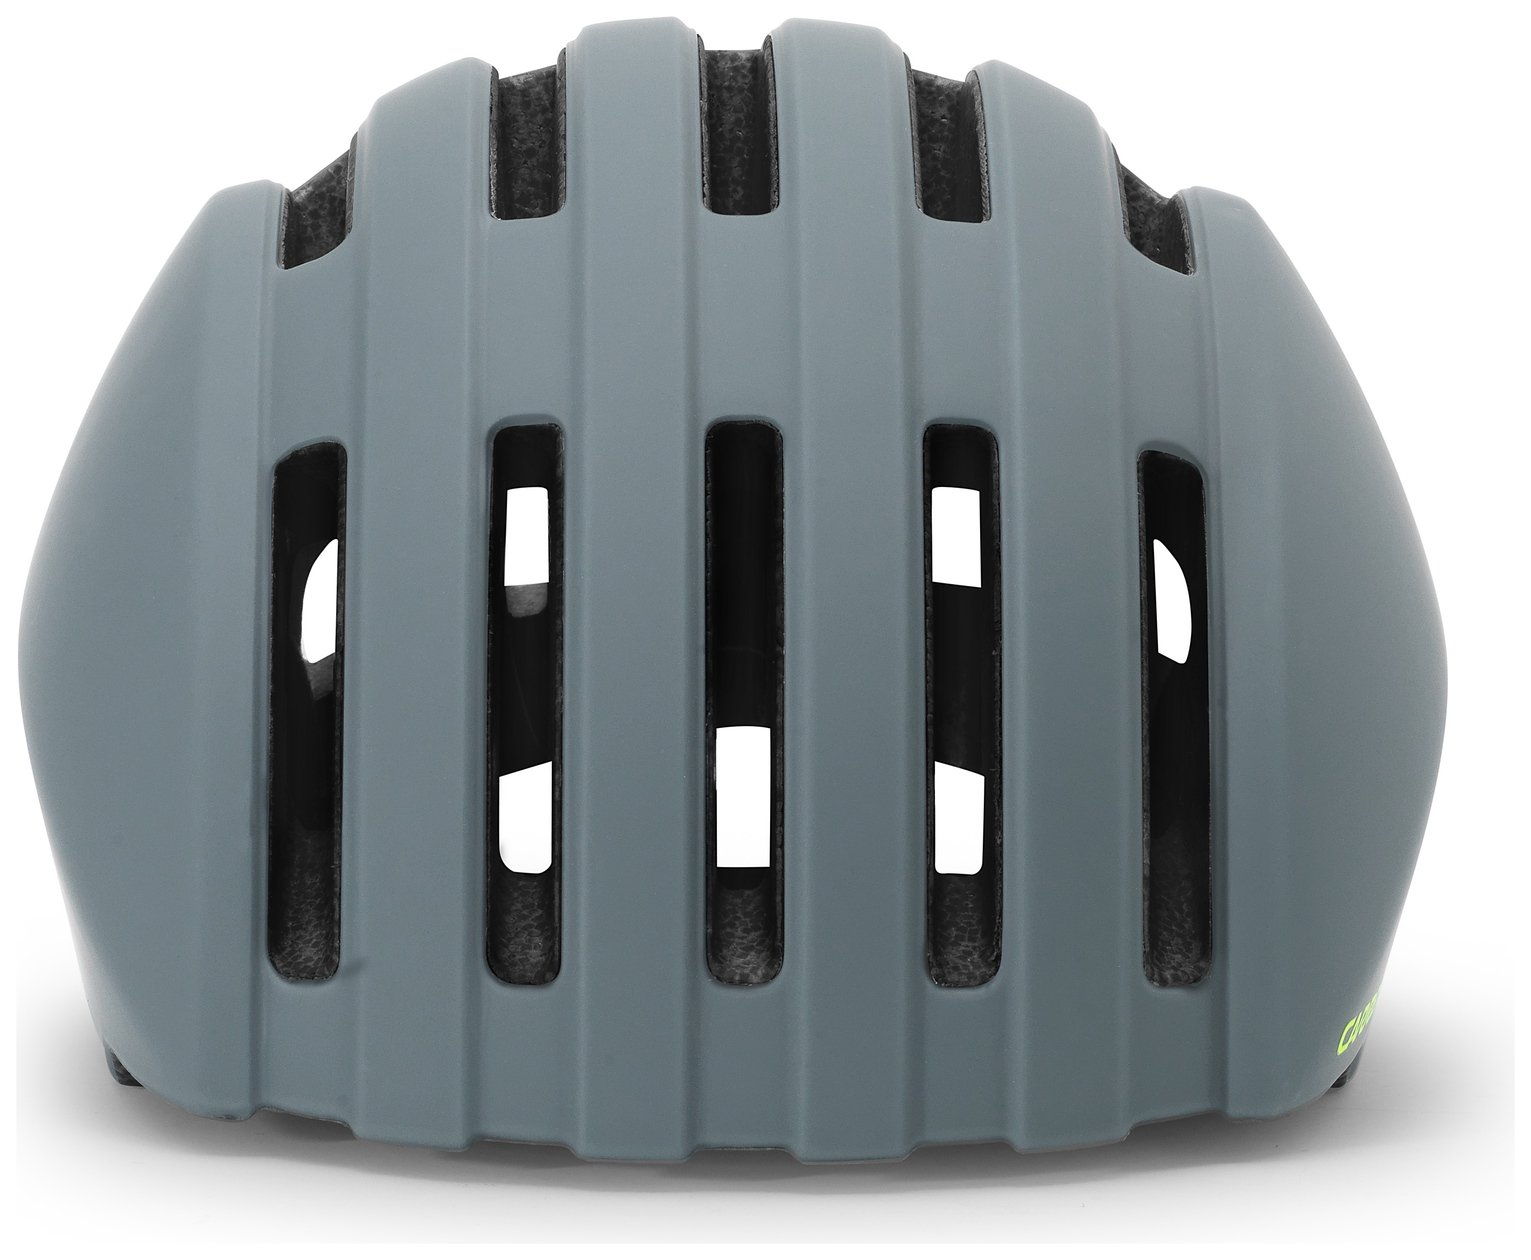 Image of Carrera Precinct Helmet - Matte Charcoal & Acid